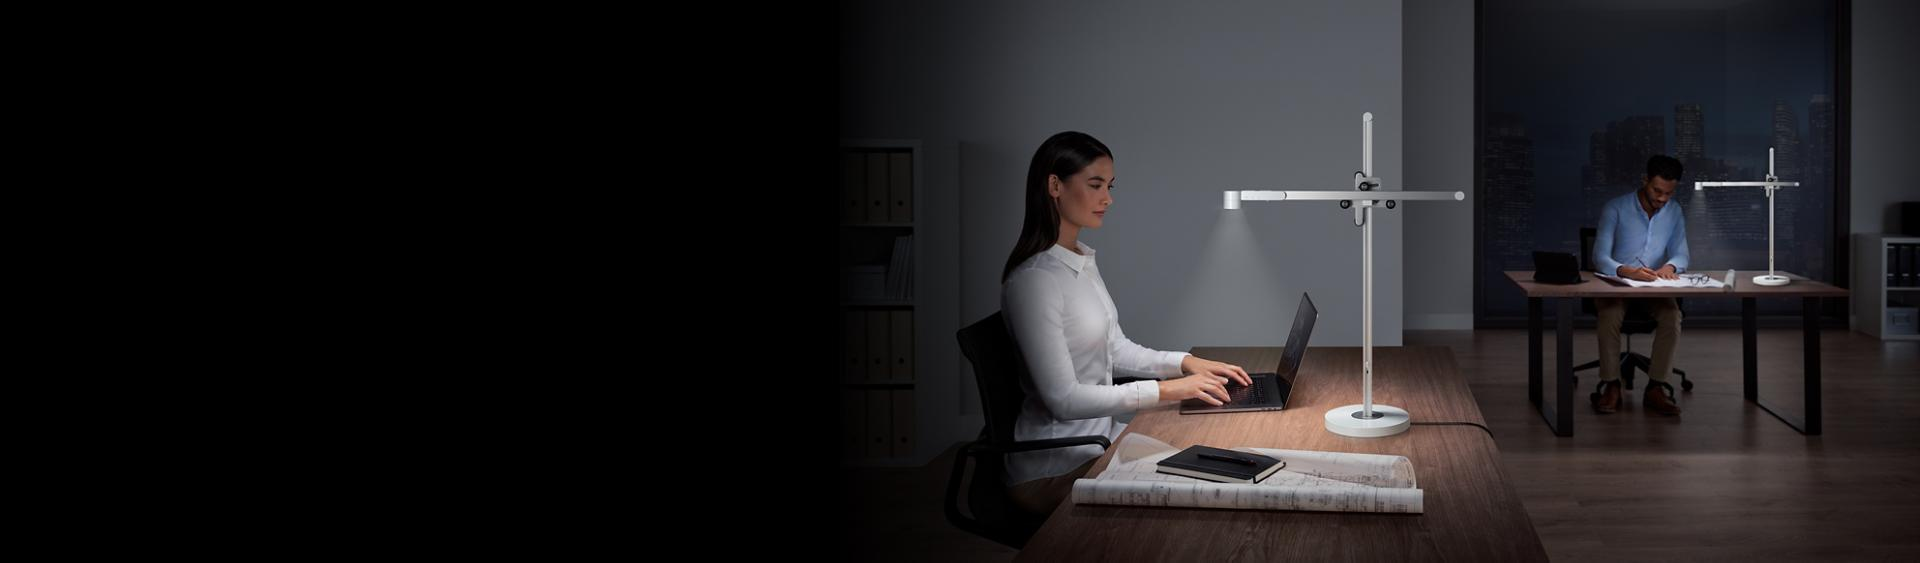 Two people at work using Dyson Lightcycle desk lights